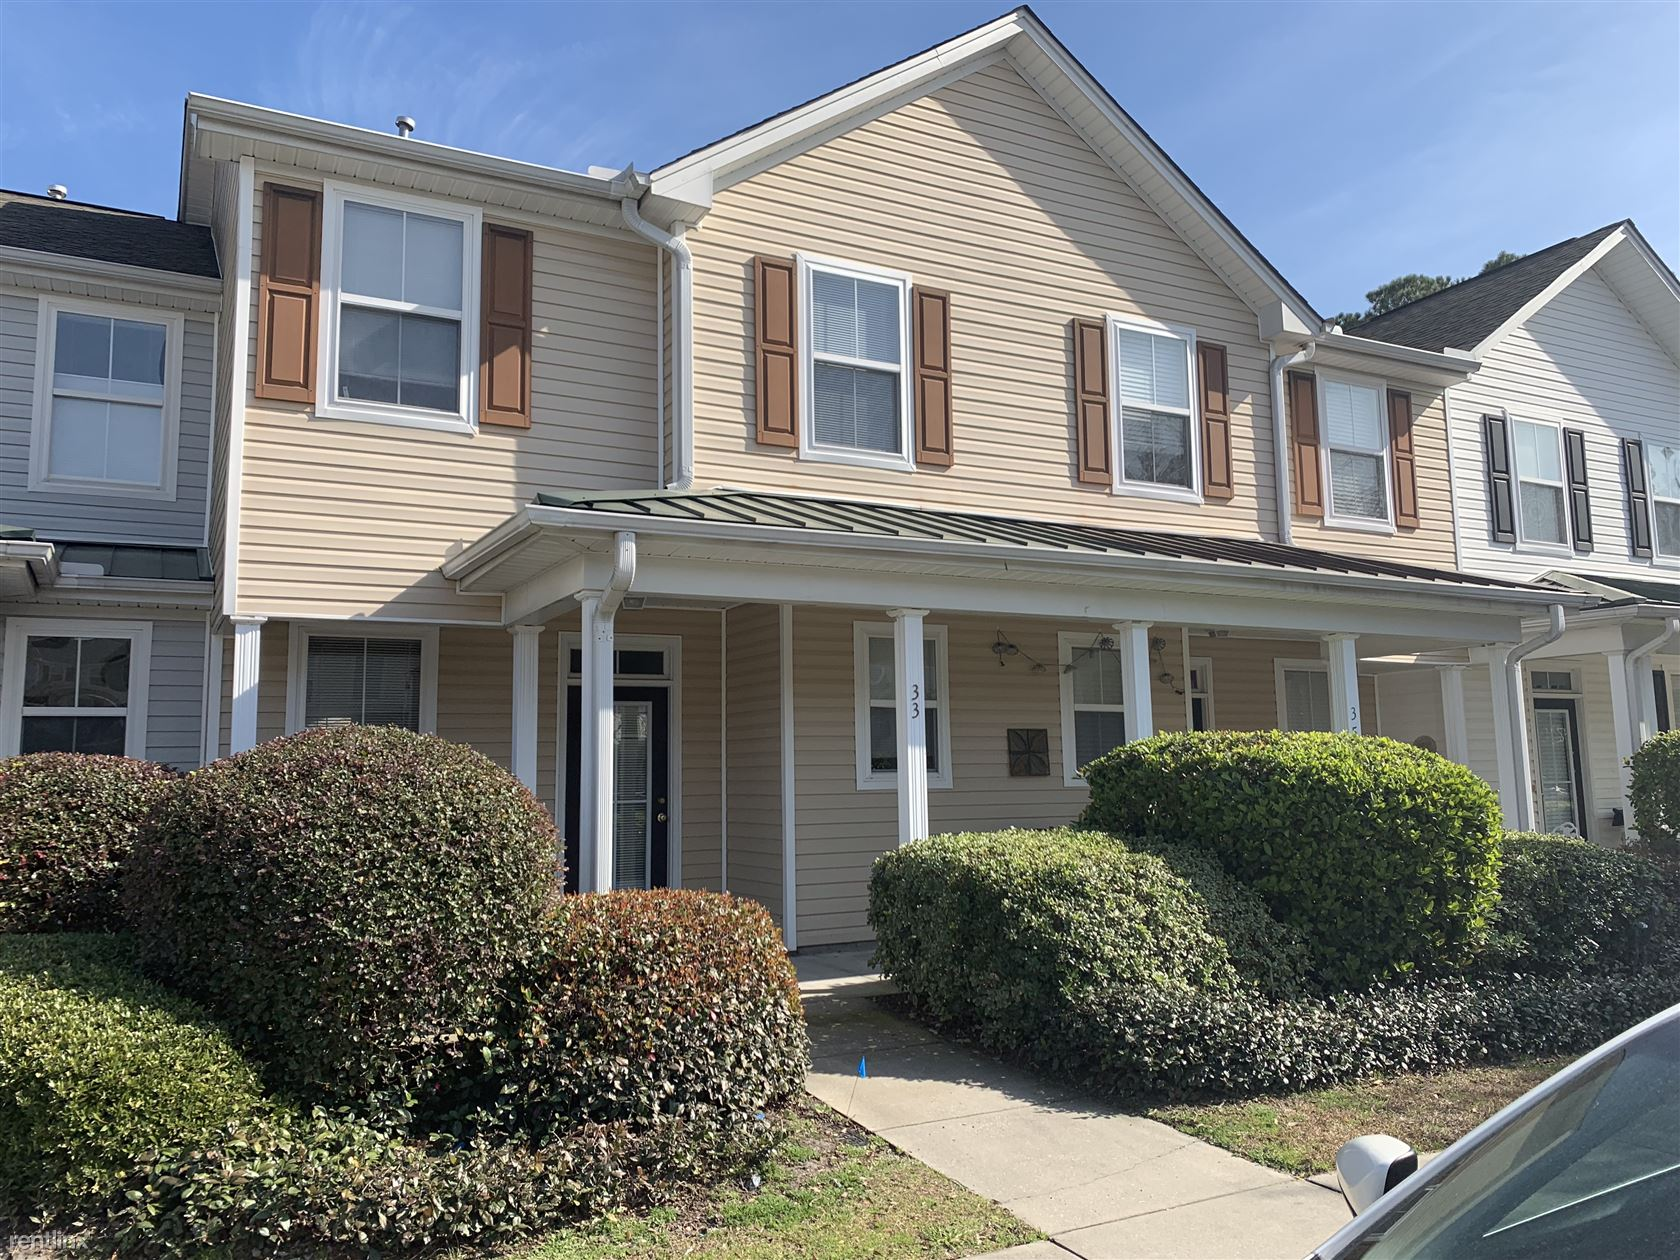 House for Rent in Bluffton